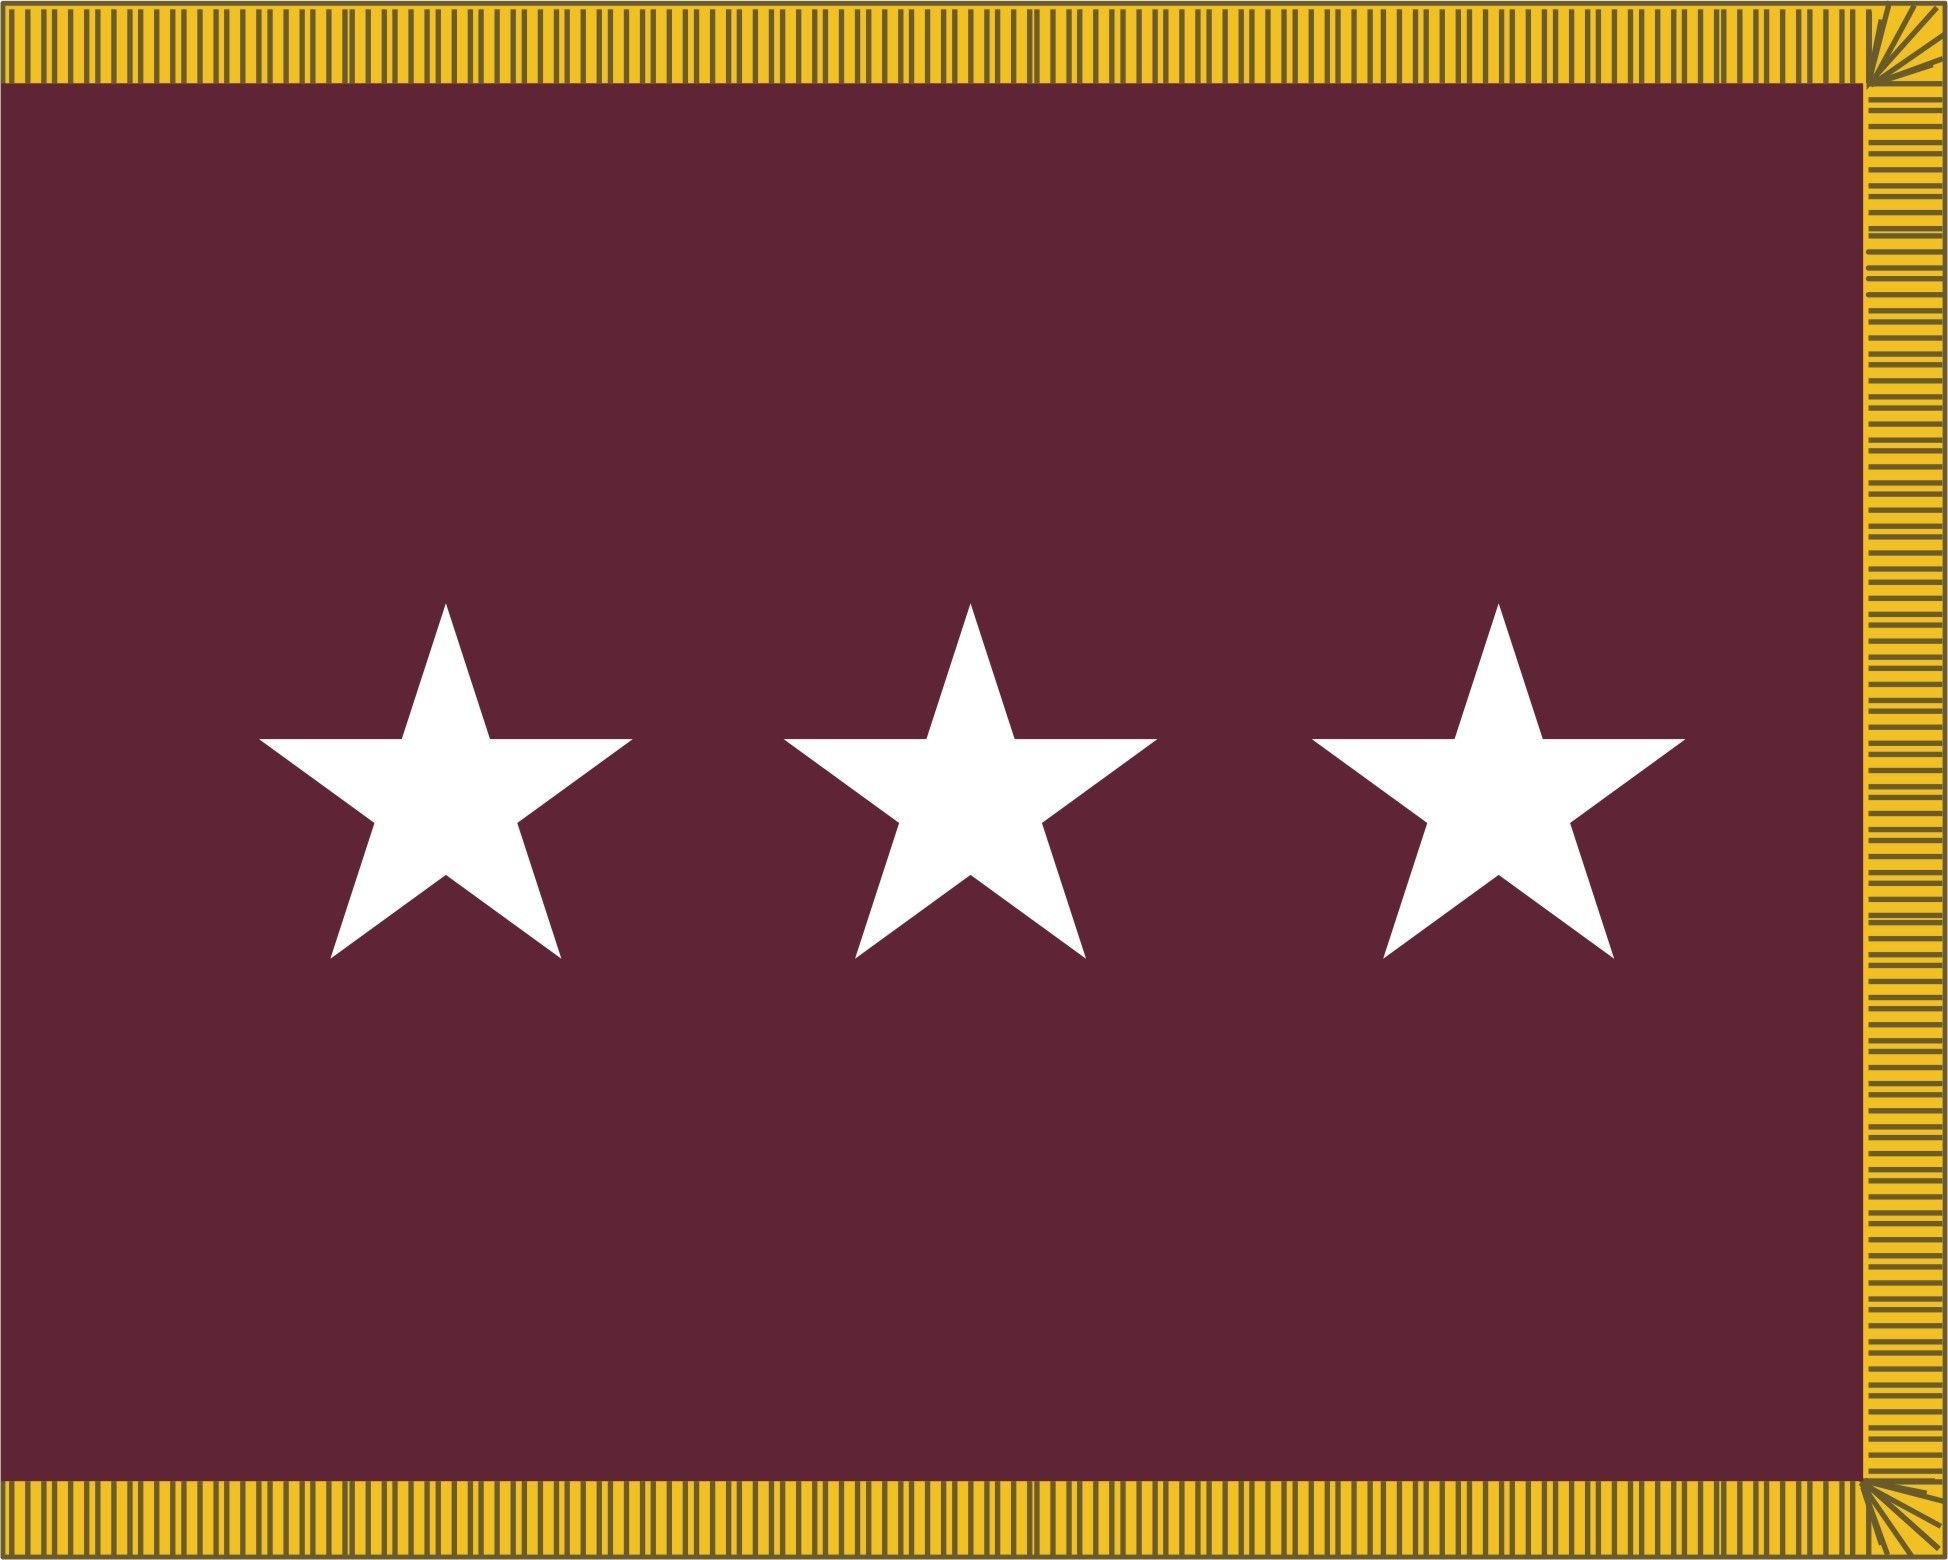 Pin On Us Army Medical Star General Flags